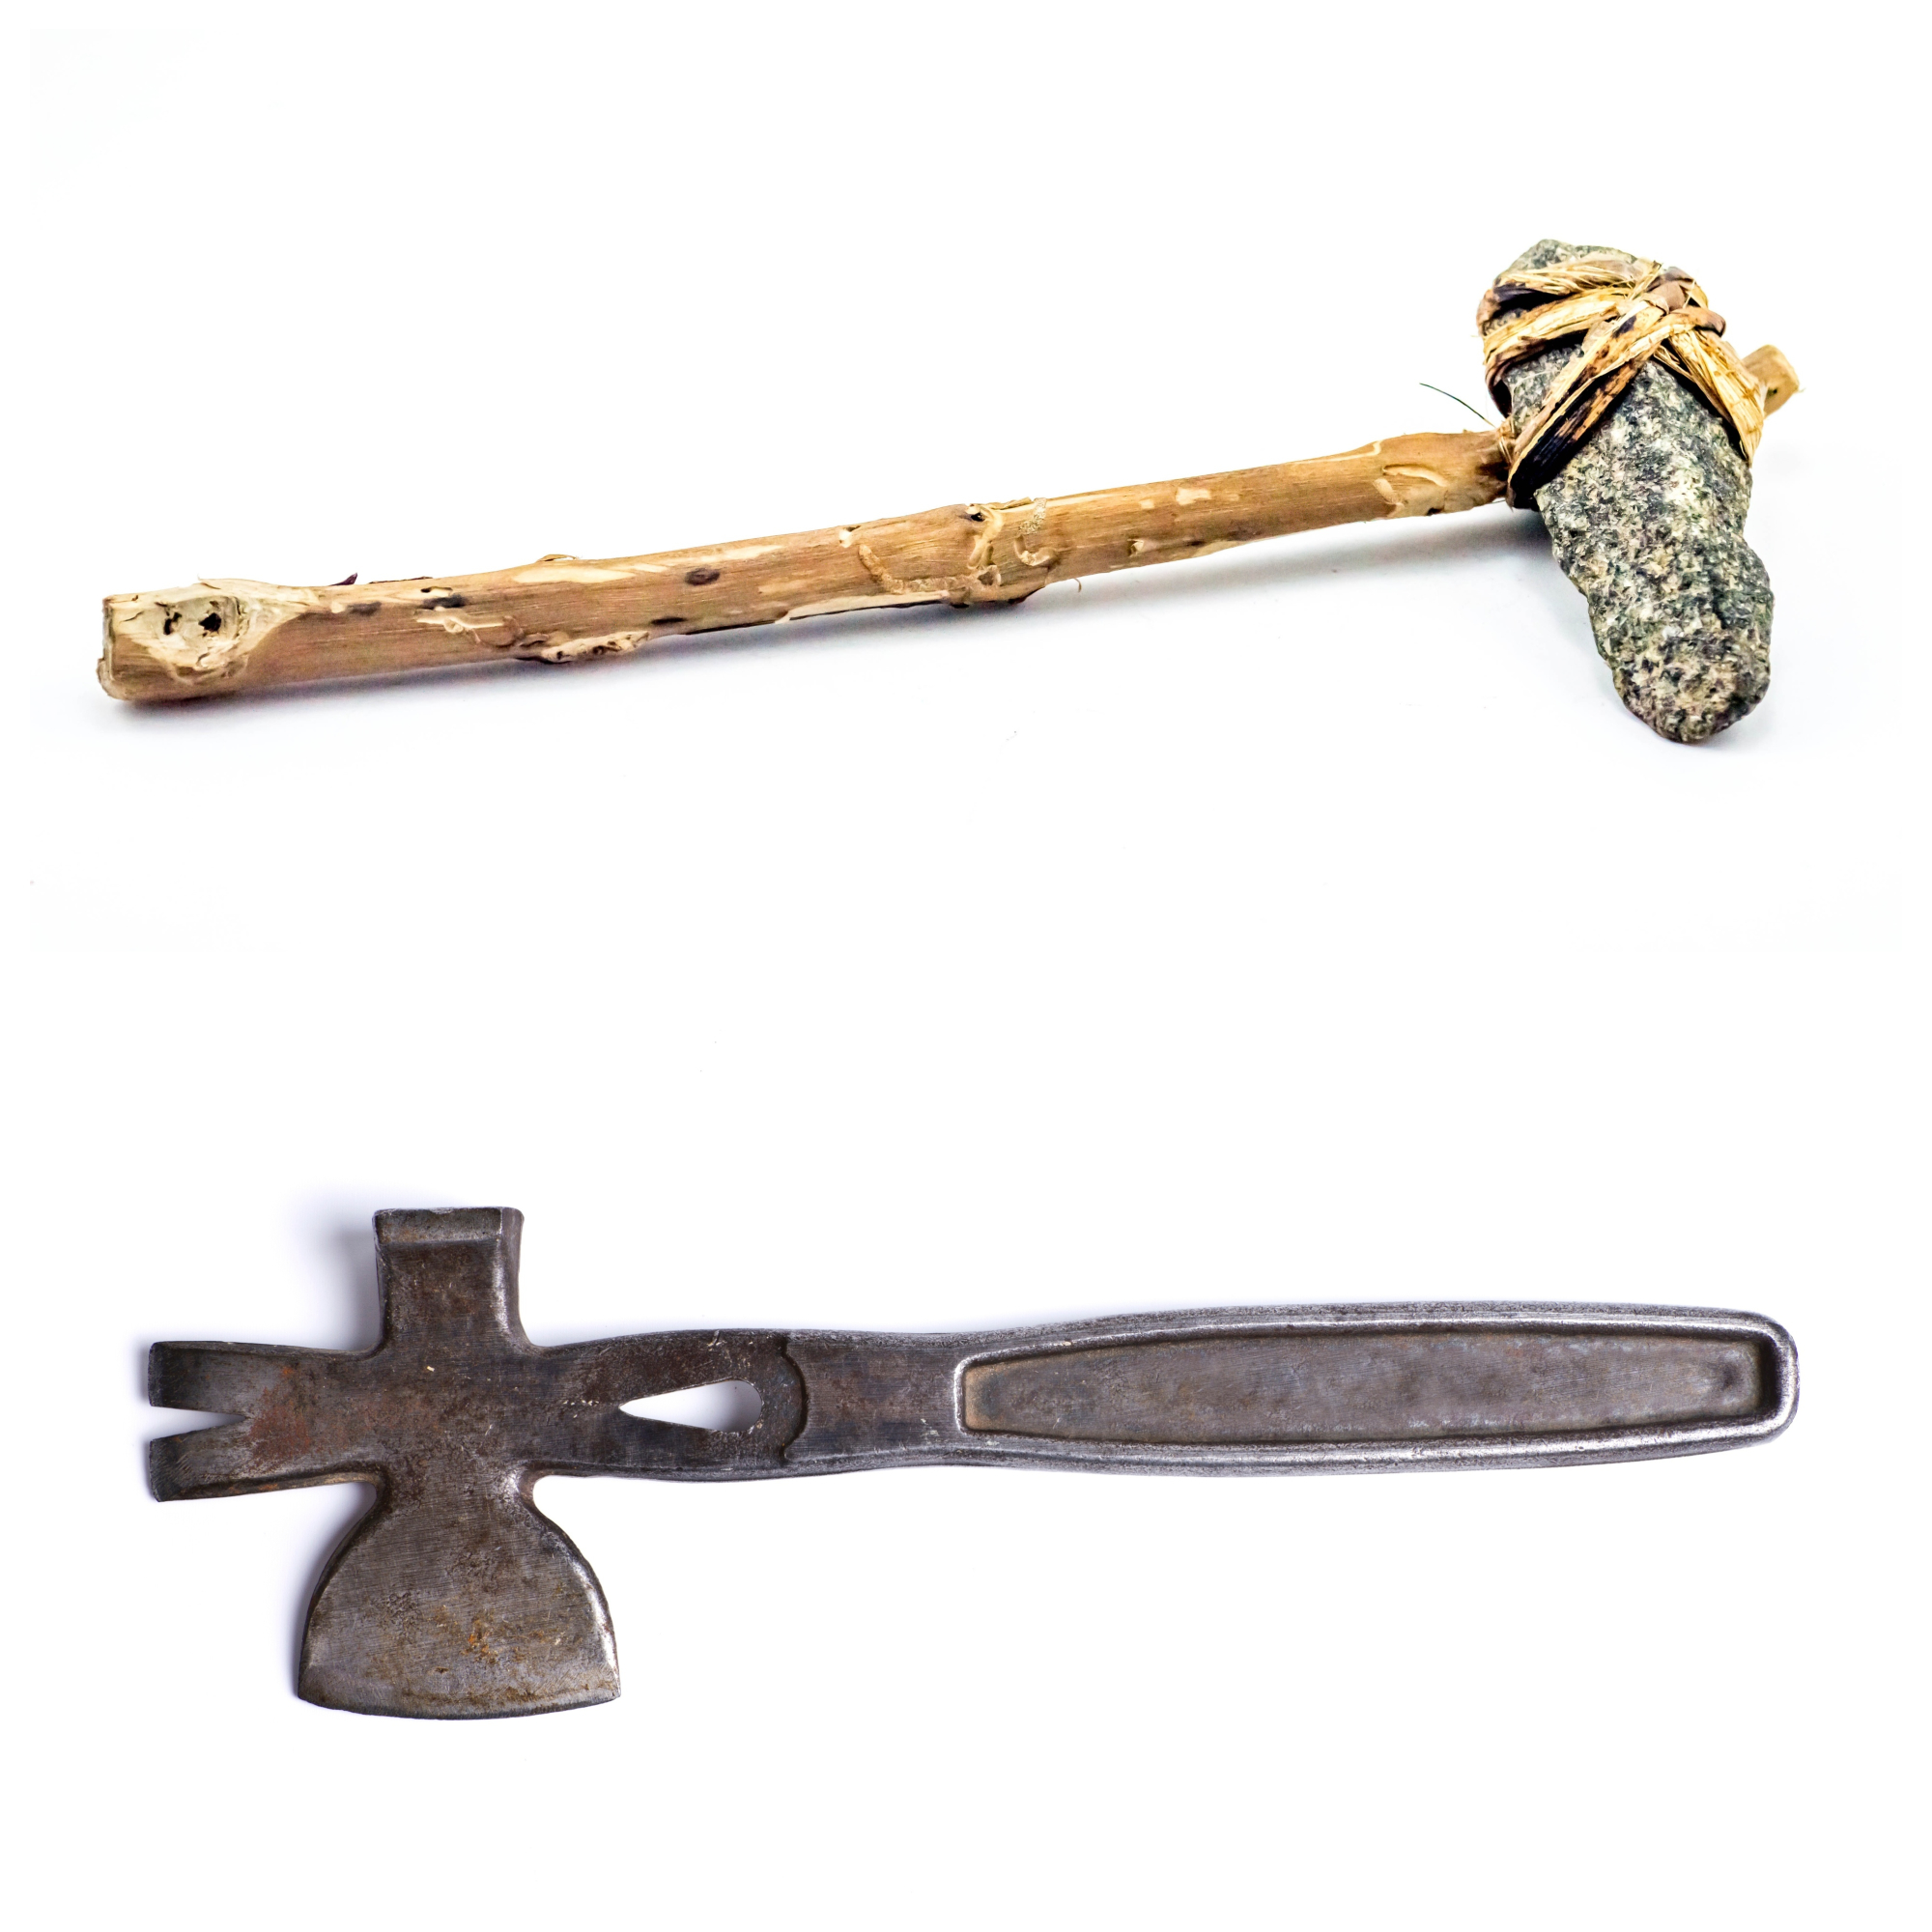 Ancient Weapons – The Indians' Use Of The Tomahawk ...